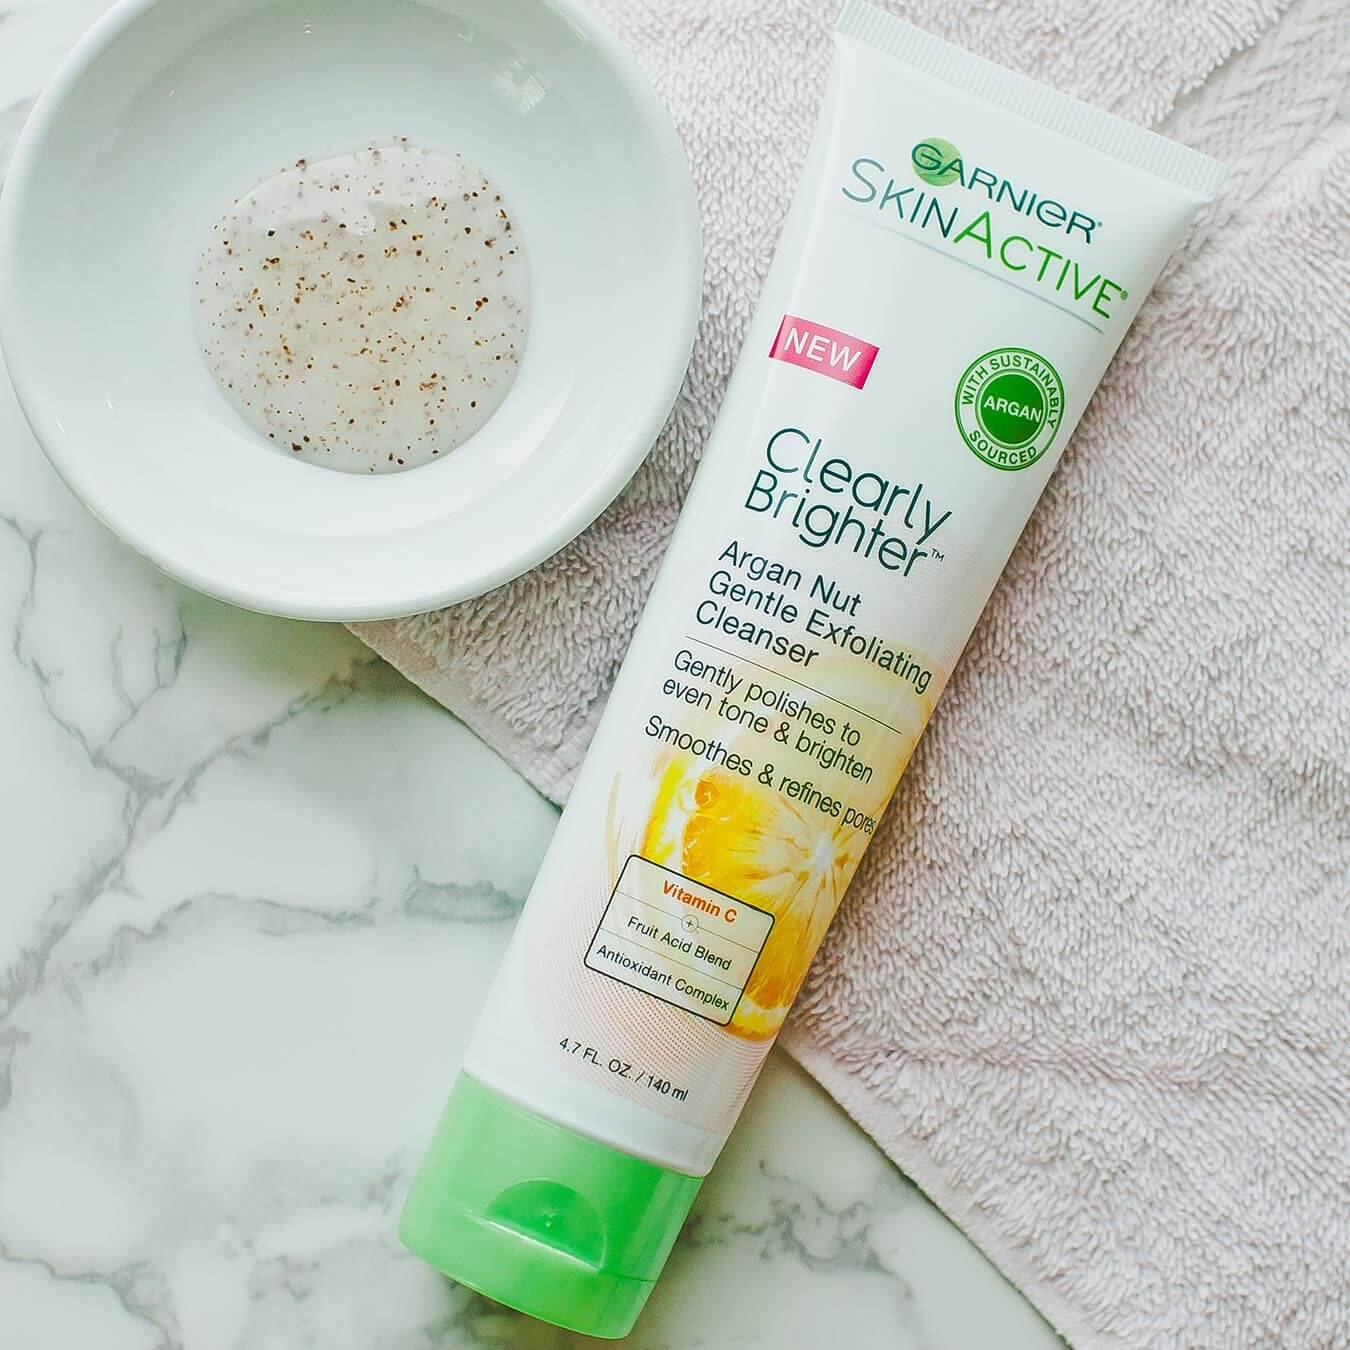 Garnier SkinActive Clearly Brighter Argan Nut Gentle Exfoliating Cleanser on a tan towel and white bowl holding a small amount of product on white marble.